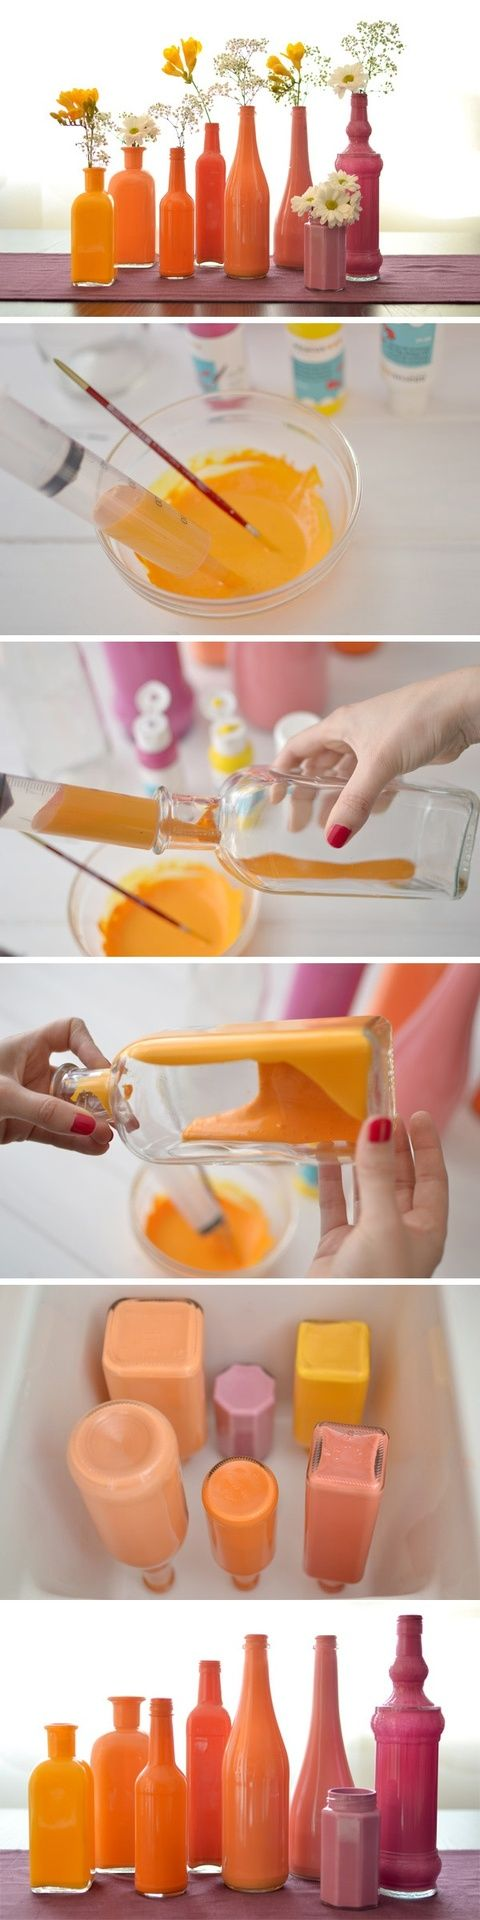 DIY Painted Bottles DIY Projects